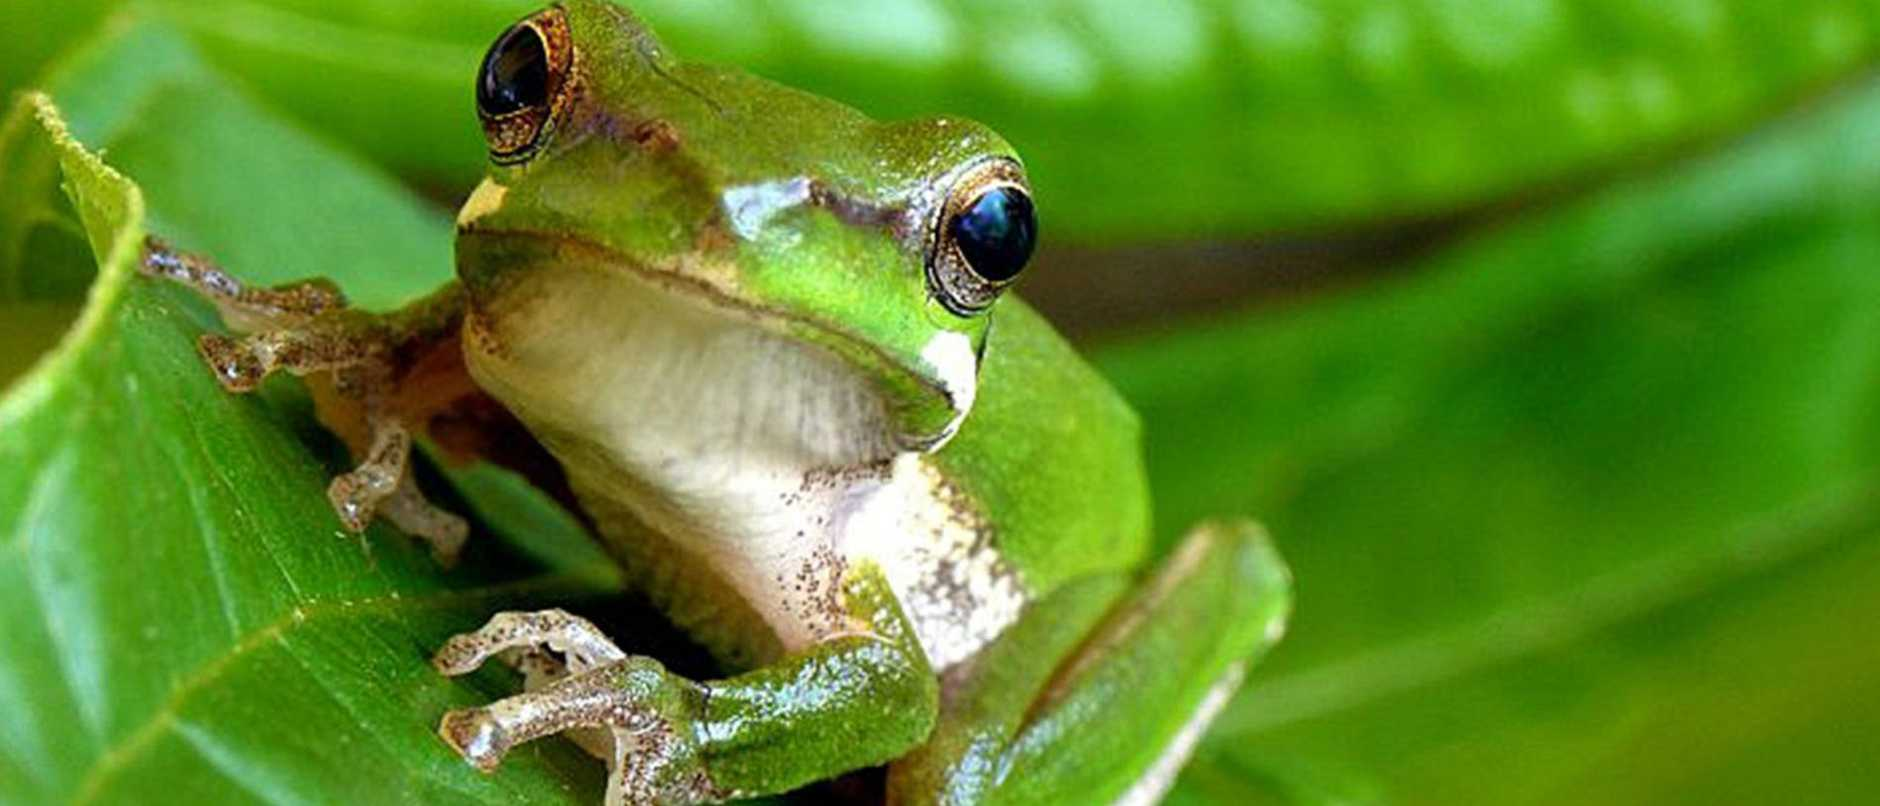 It's not easy being a local green frog, but locals are here to help.